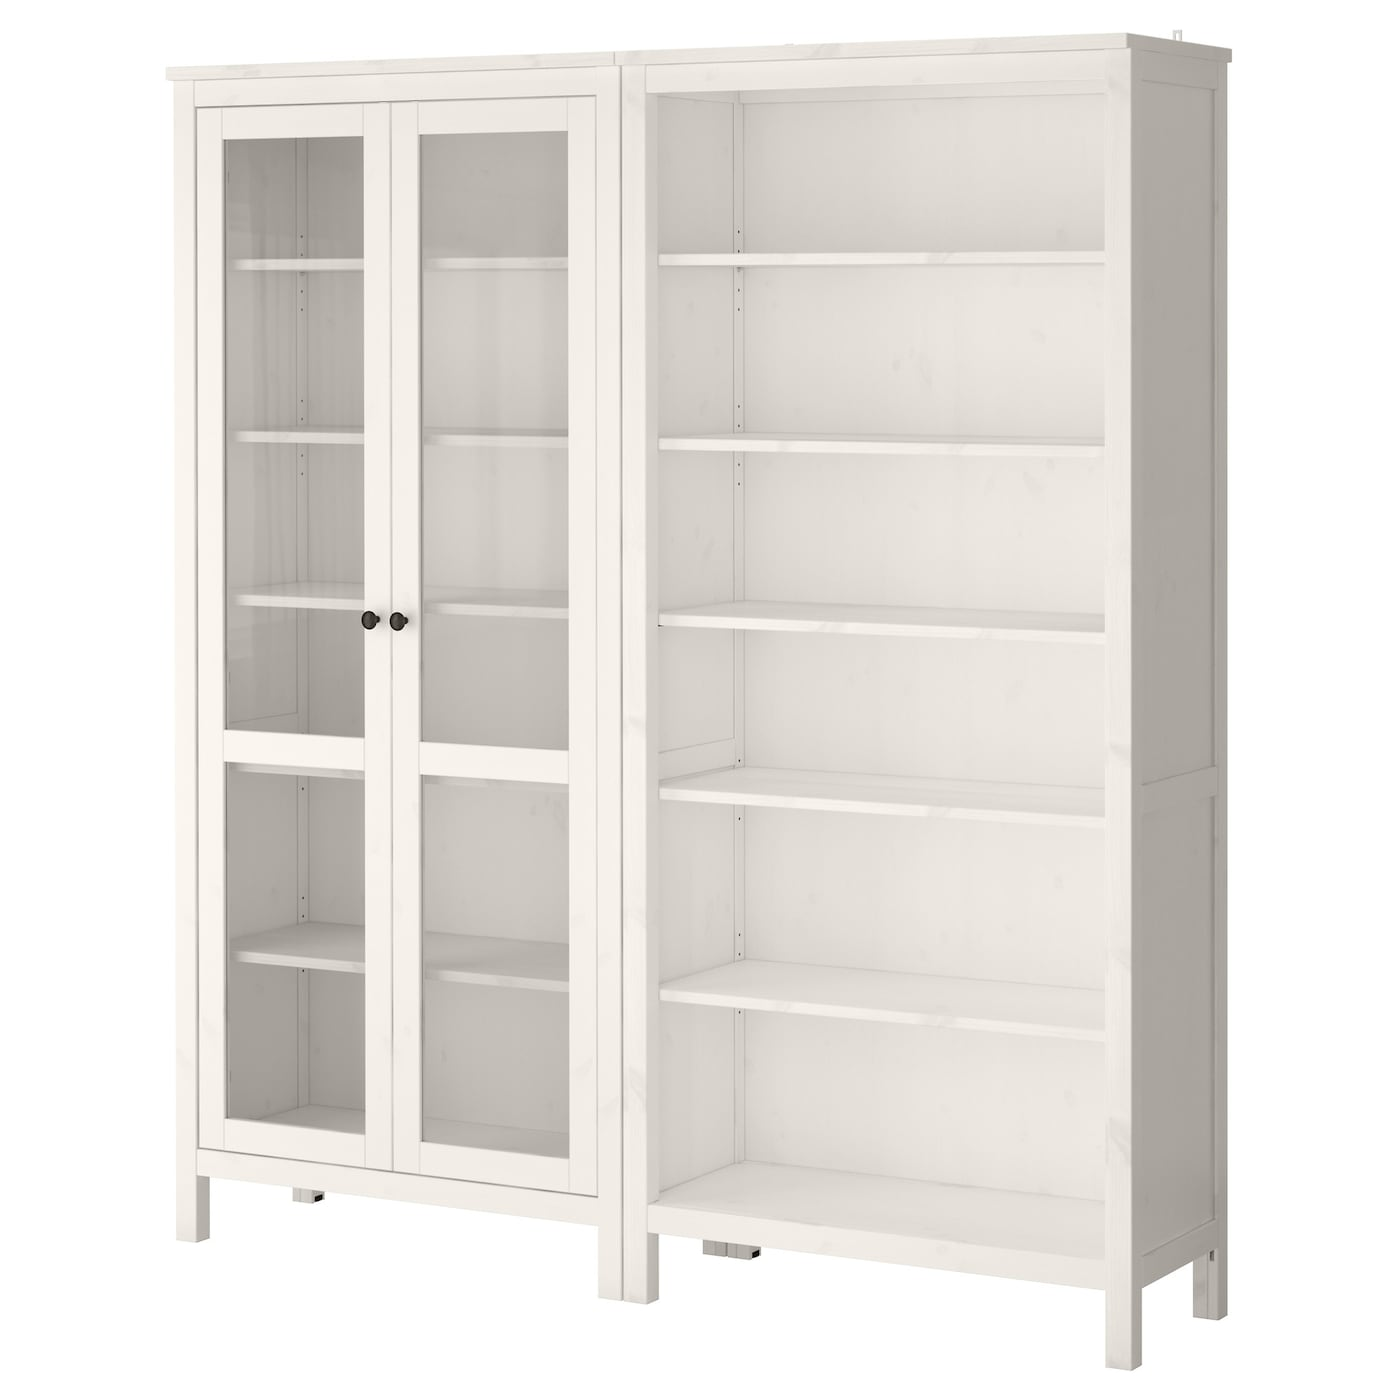 inspire white with bookcase home product free manor lattice today classic by drawers garden drawer overstock quatrefoils bookshelf shelving shipping q